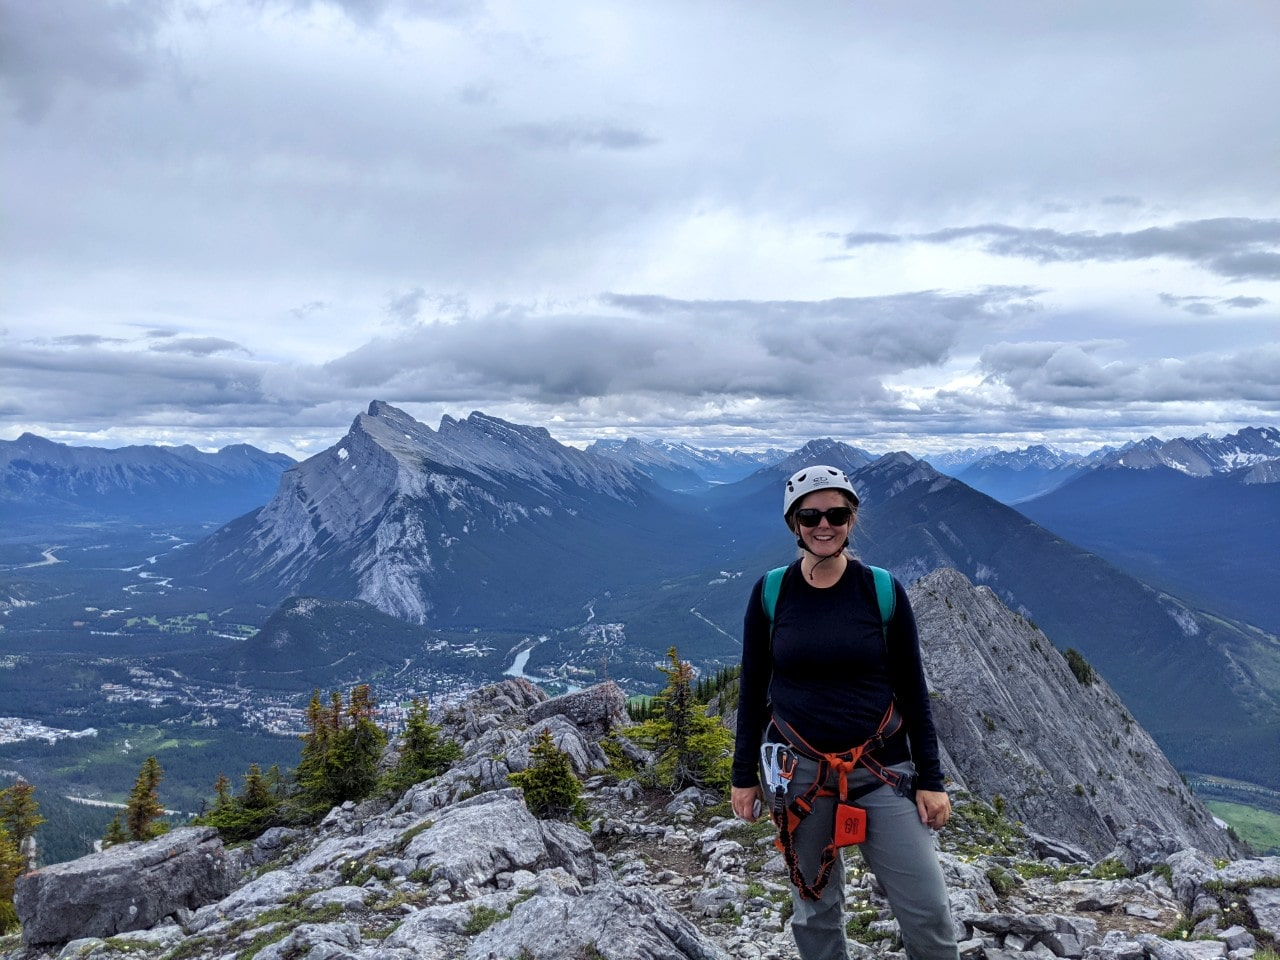 Gemma standing at the top of Mt Norquay Via Ferrata looking at camera with views of mountains and Banff behind